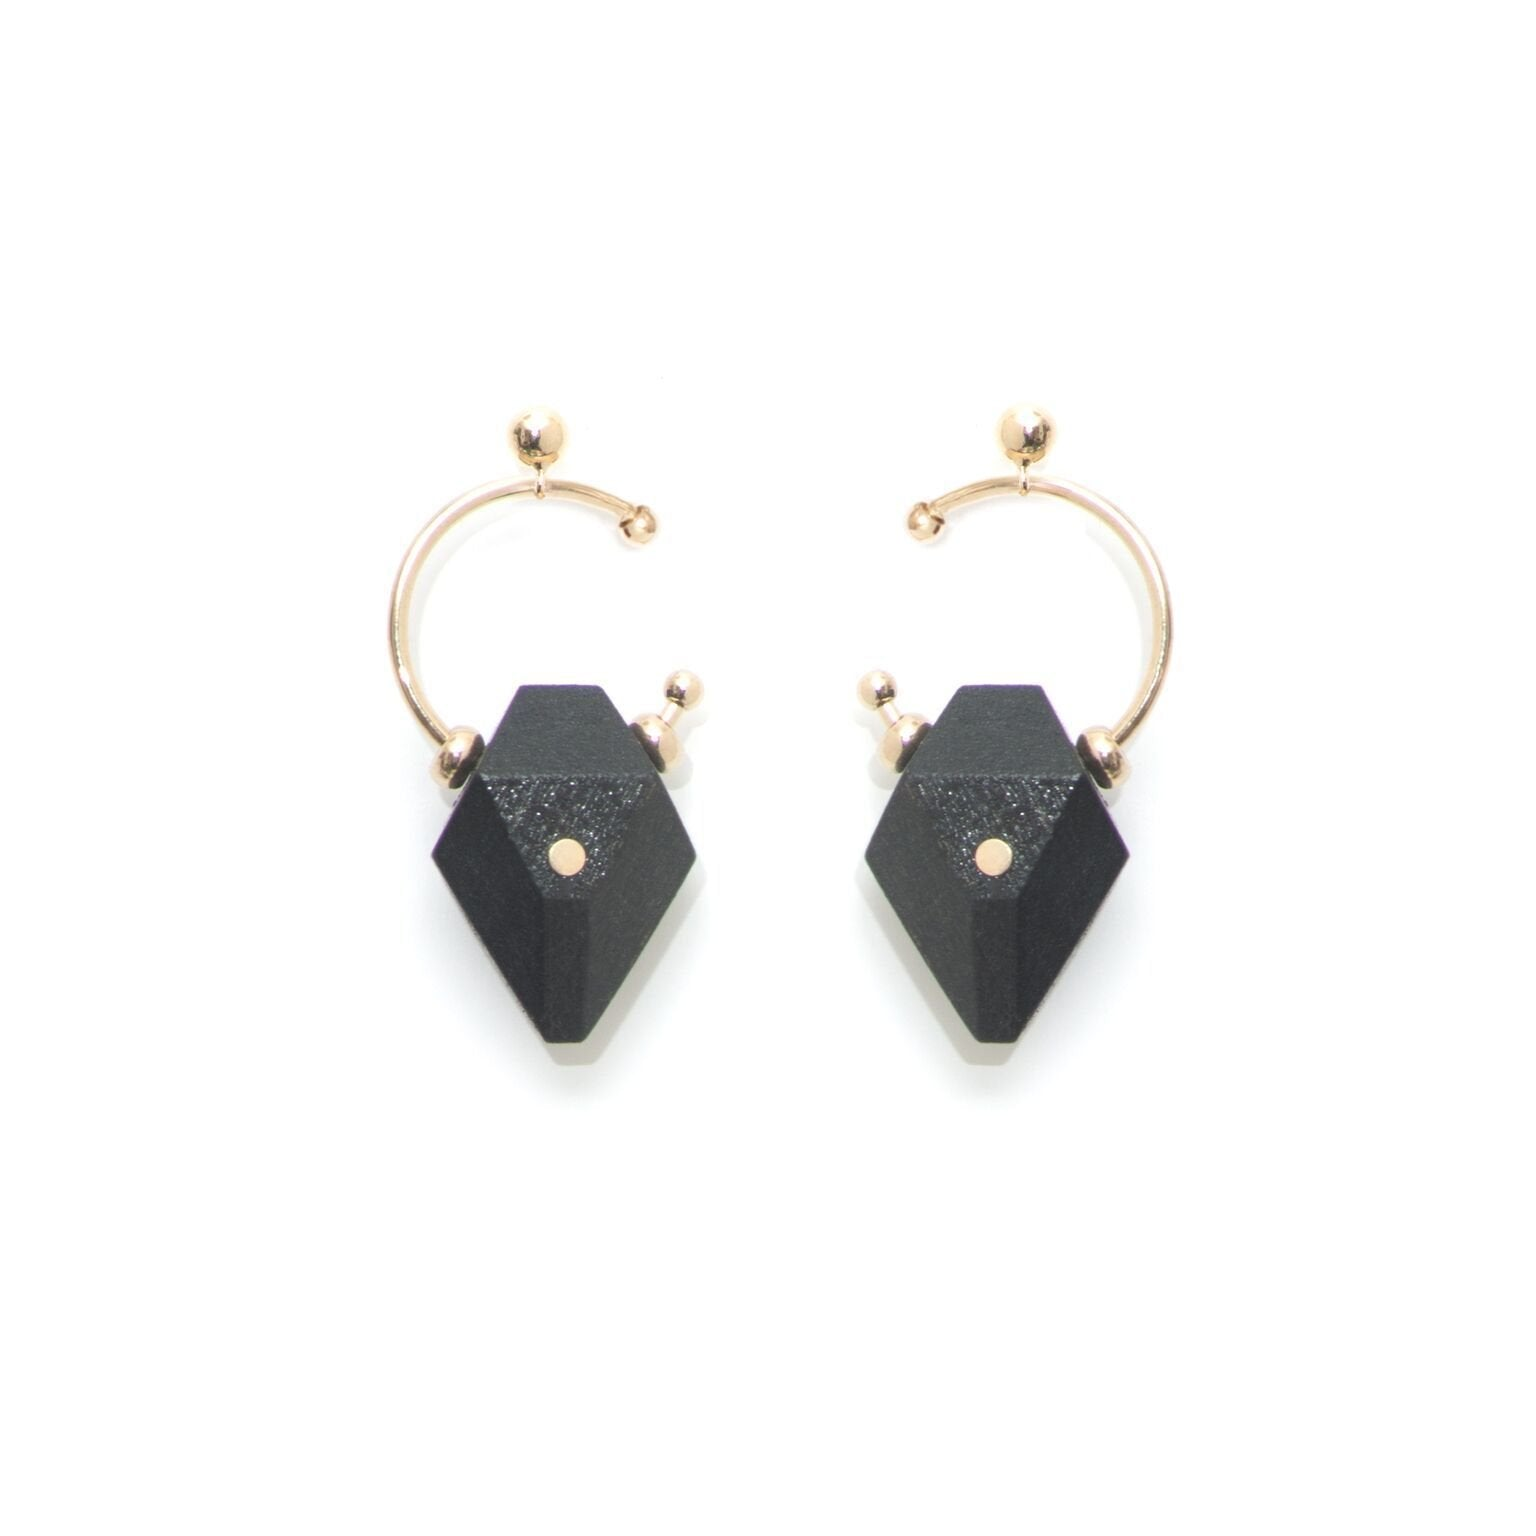 Canip Black Champagne Earrings - The Clothing LoungeSalomé Charly